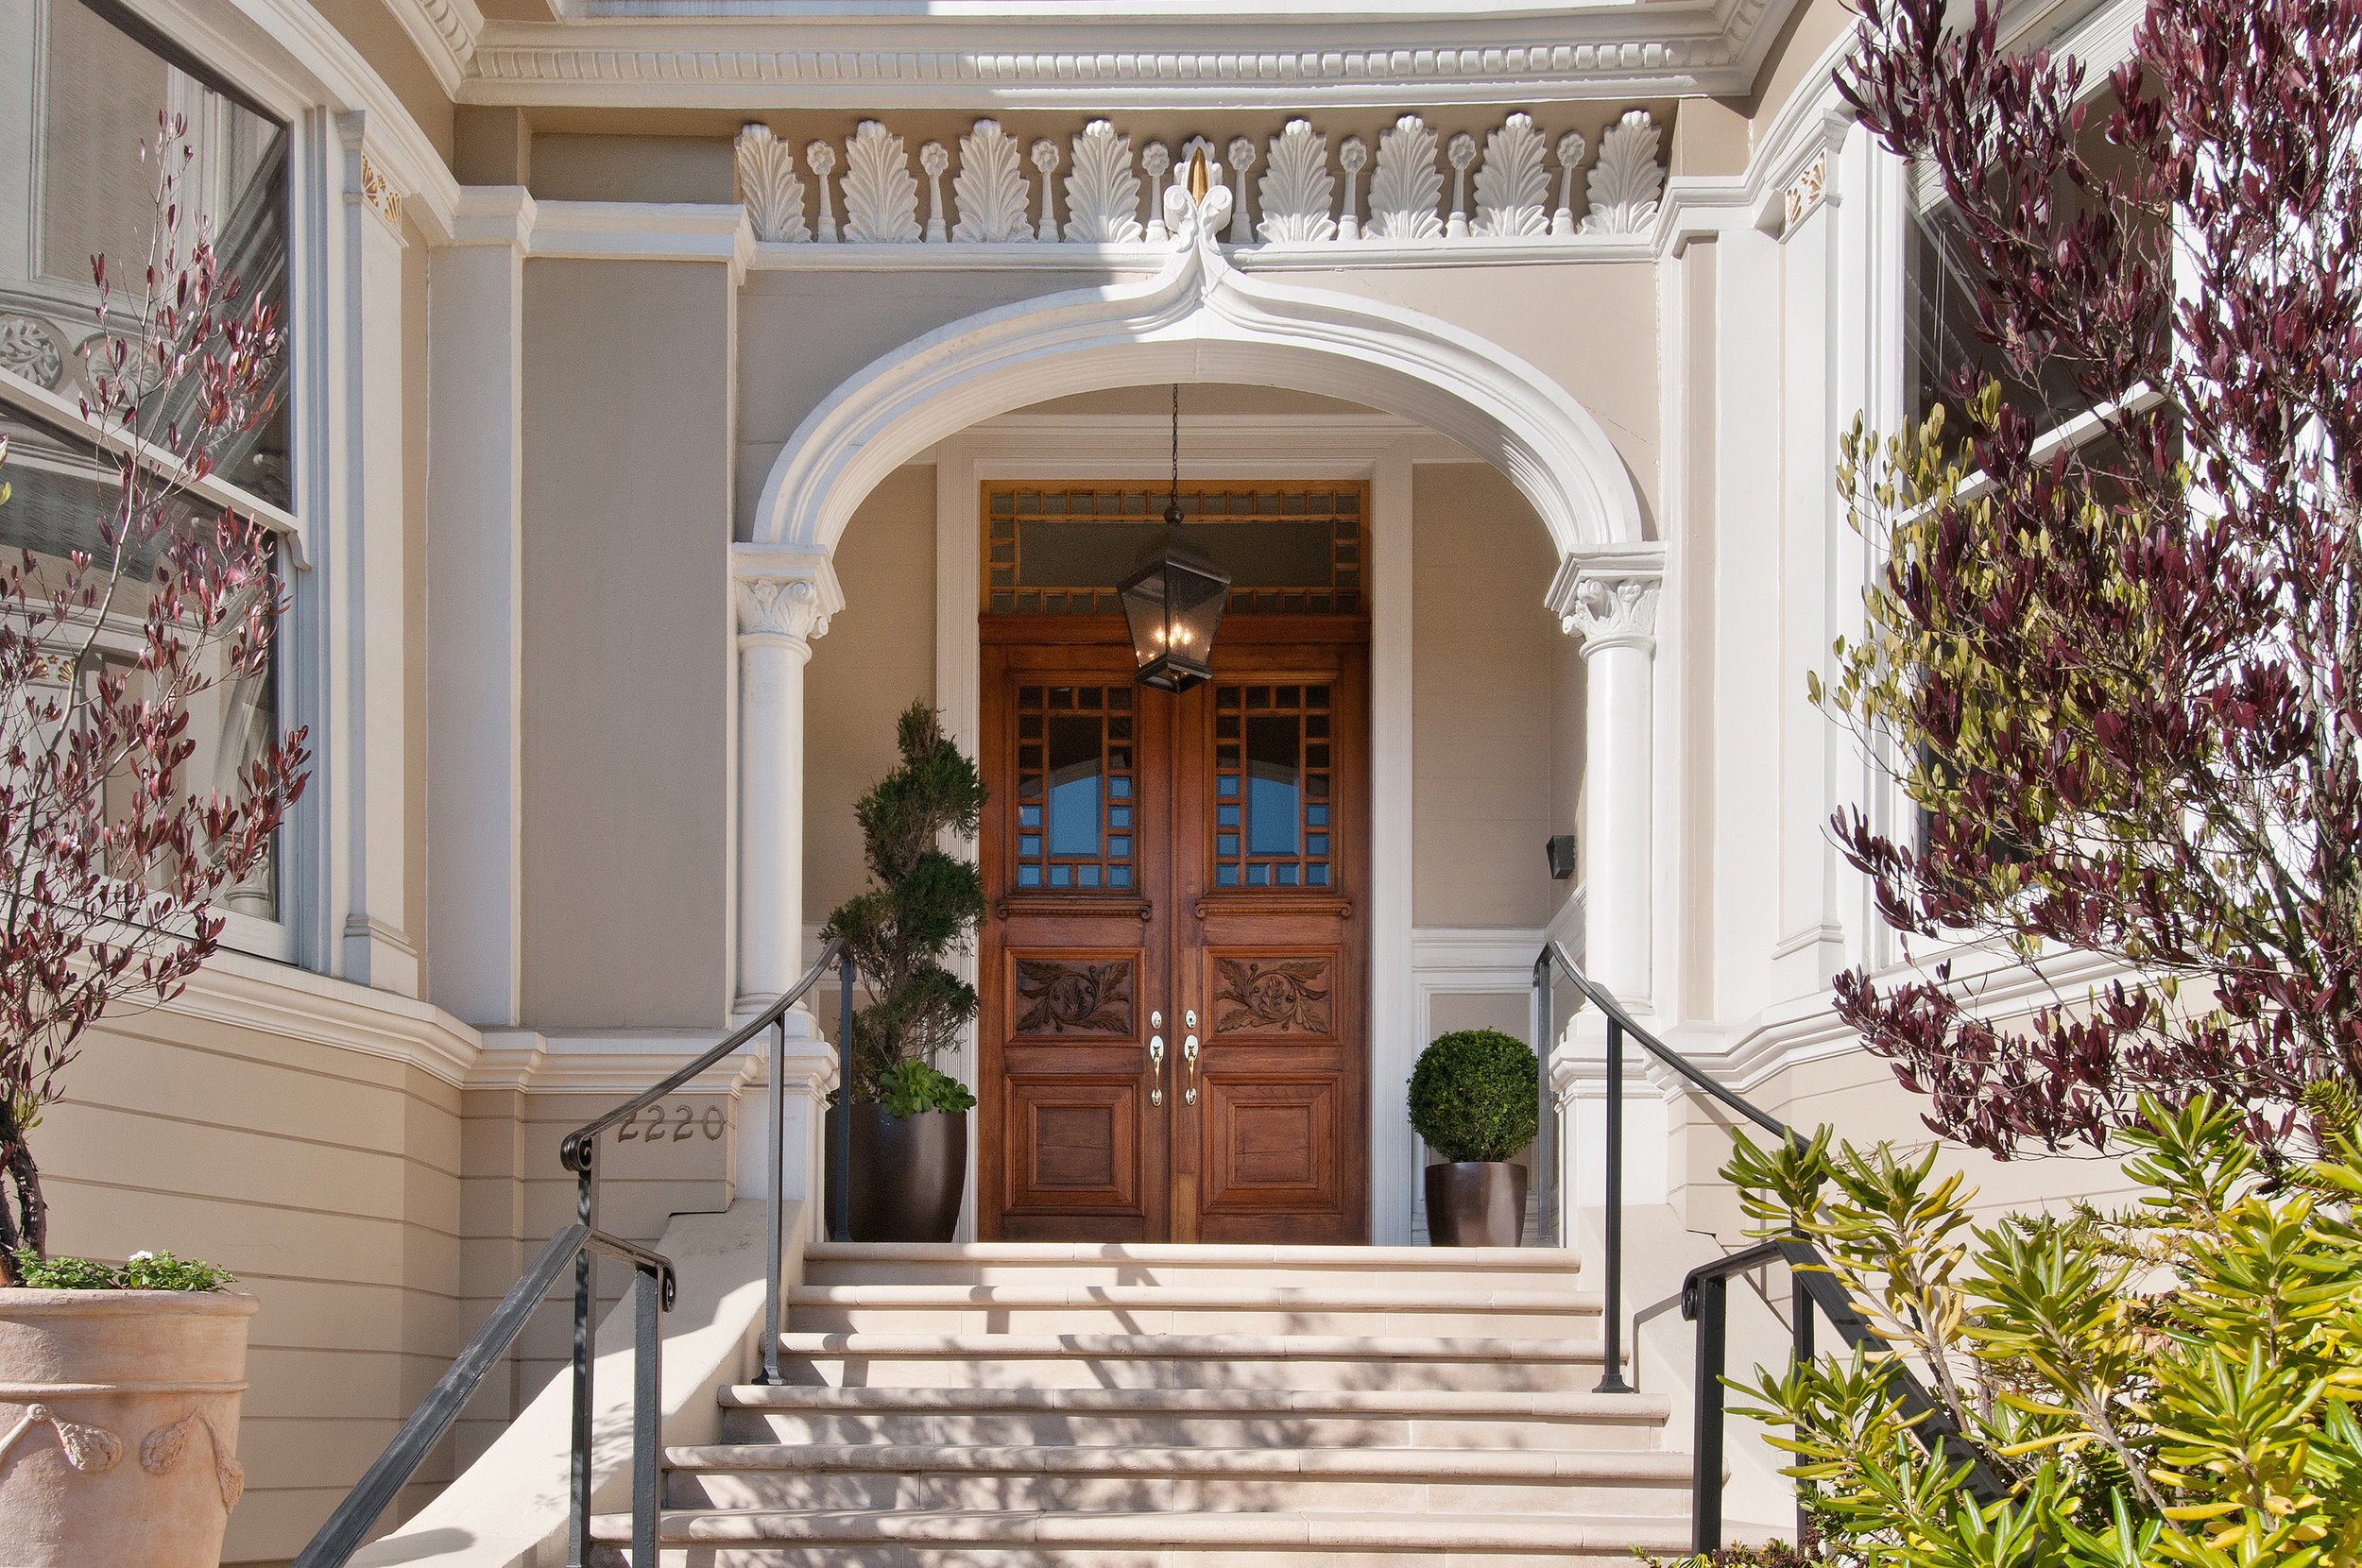 Pacific Heights Queen Anne 2200 Sacramento - $4,300,000